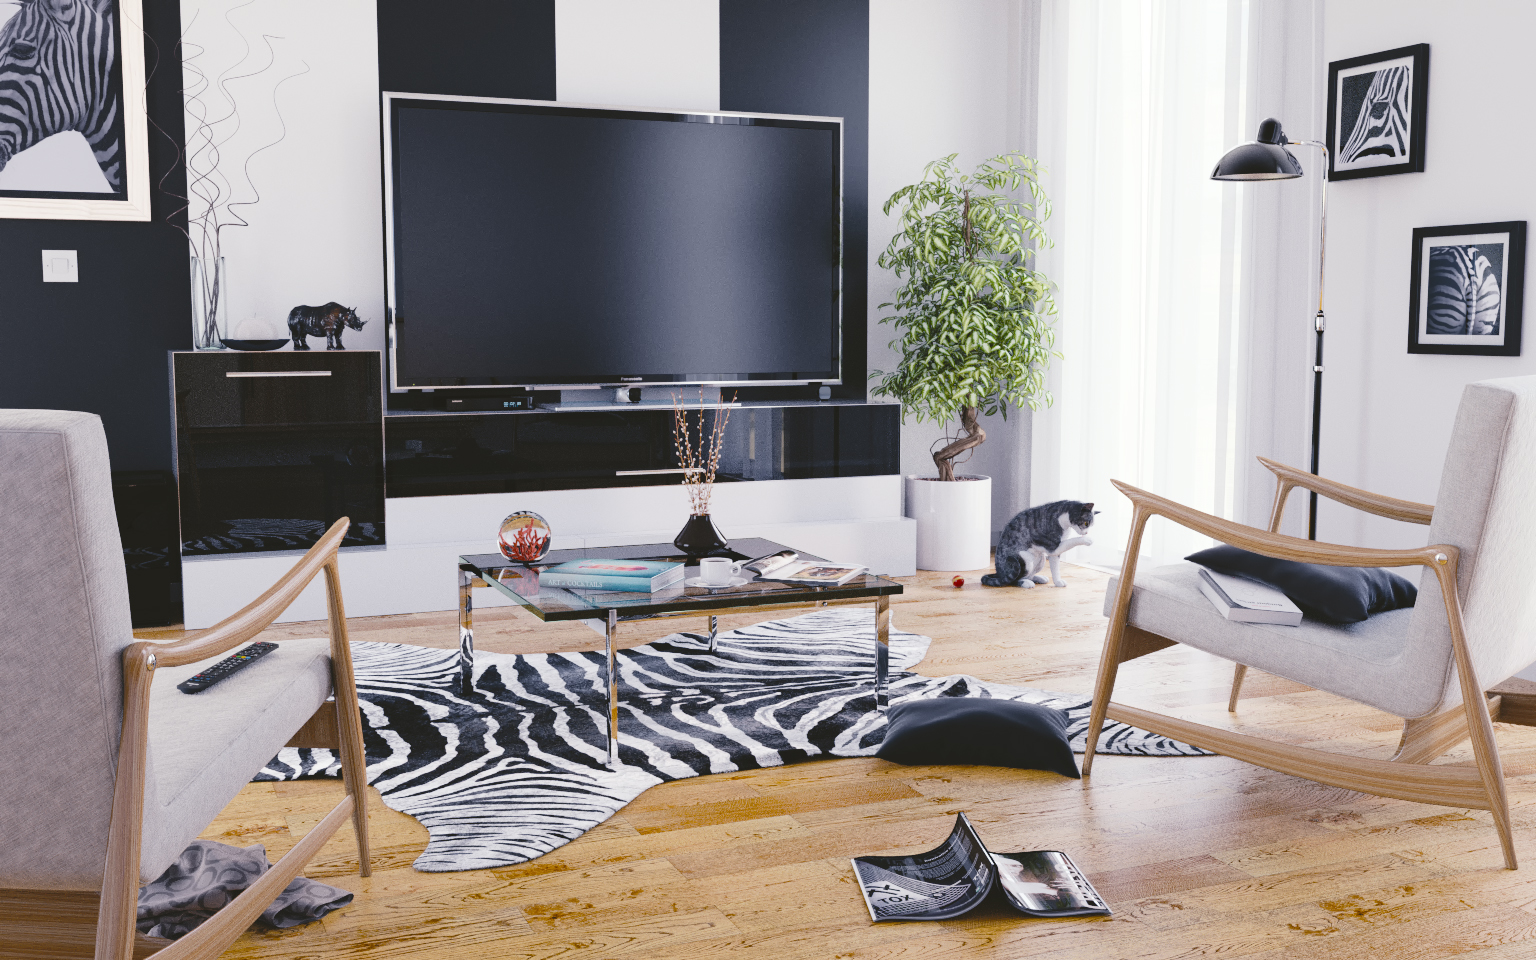 Zebra Living Room - Finished Projects - Blender Artists ...